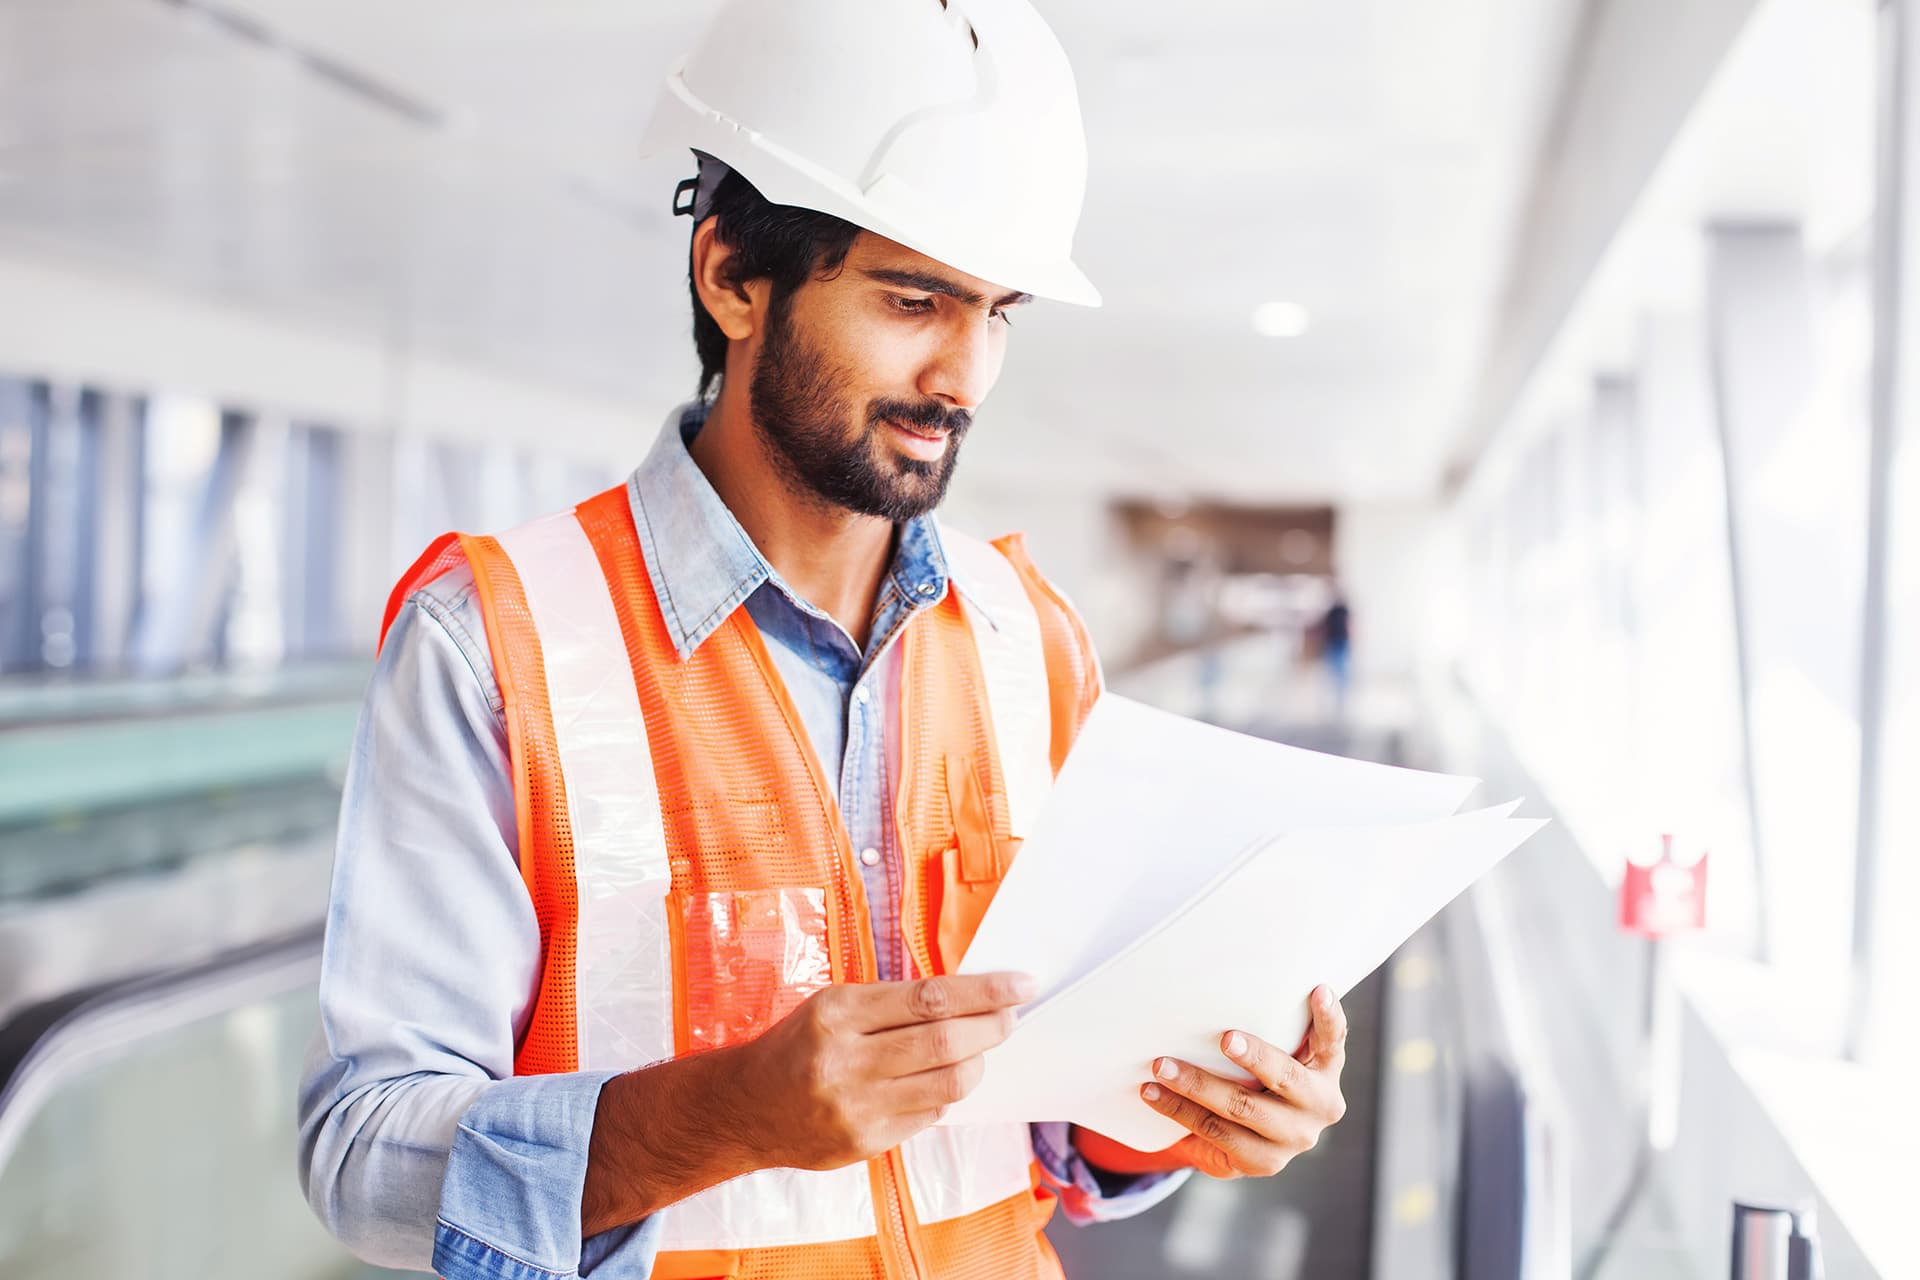 Man wearing an construction vest and hard hat, looking at his engineering insurance documents